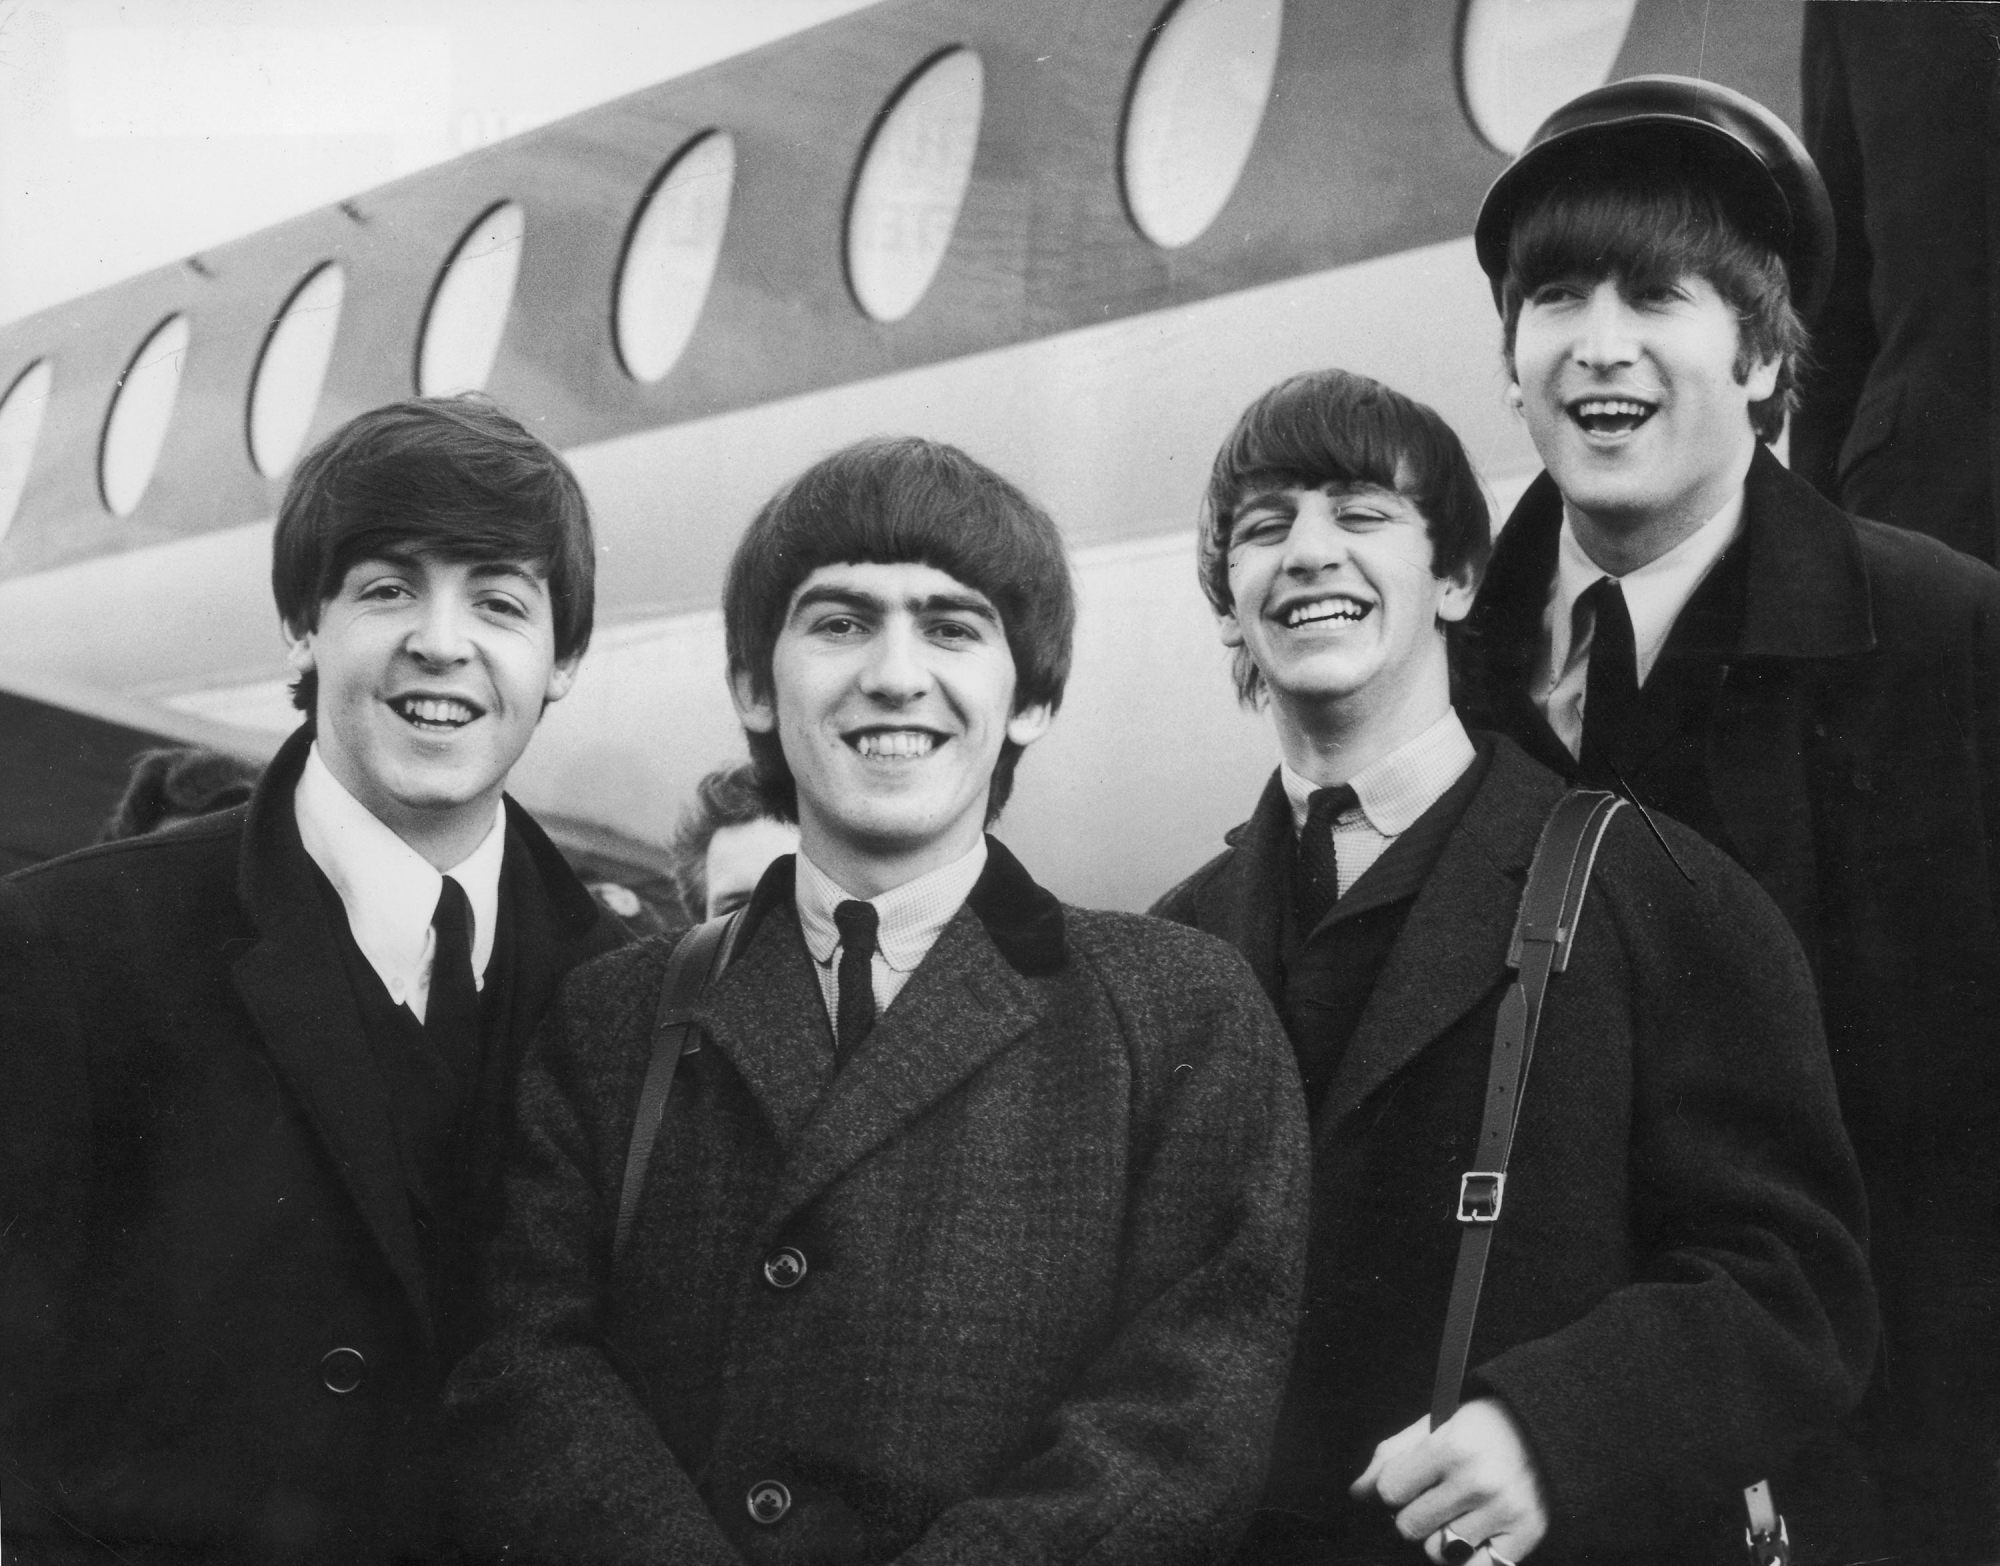 The Beatles (from left) Paul McCartney, George Harrison, Ringo Starr and Lennon arrive in London in February, 1964, after a trip to Paris. Photo: Getty Images